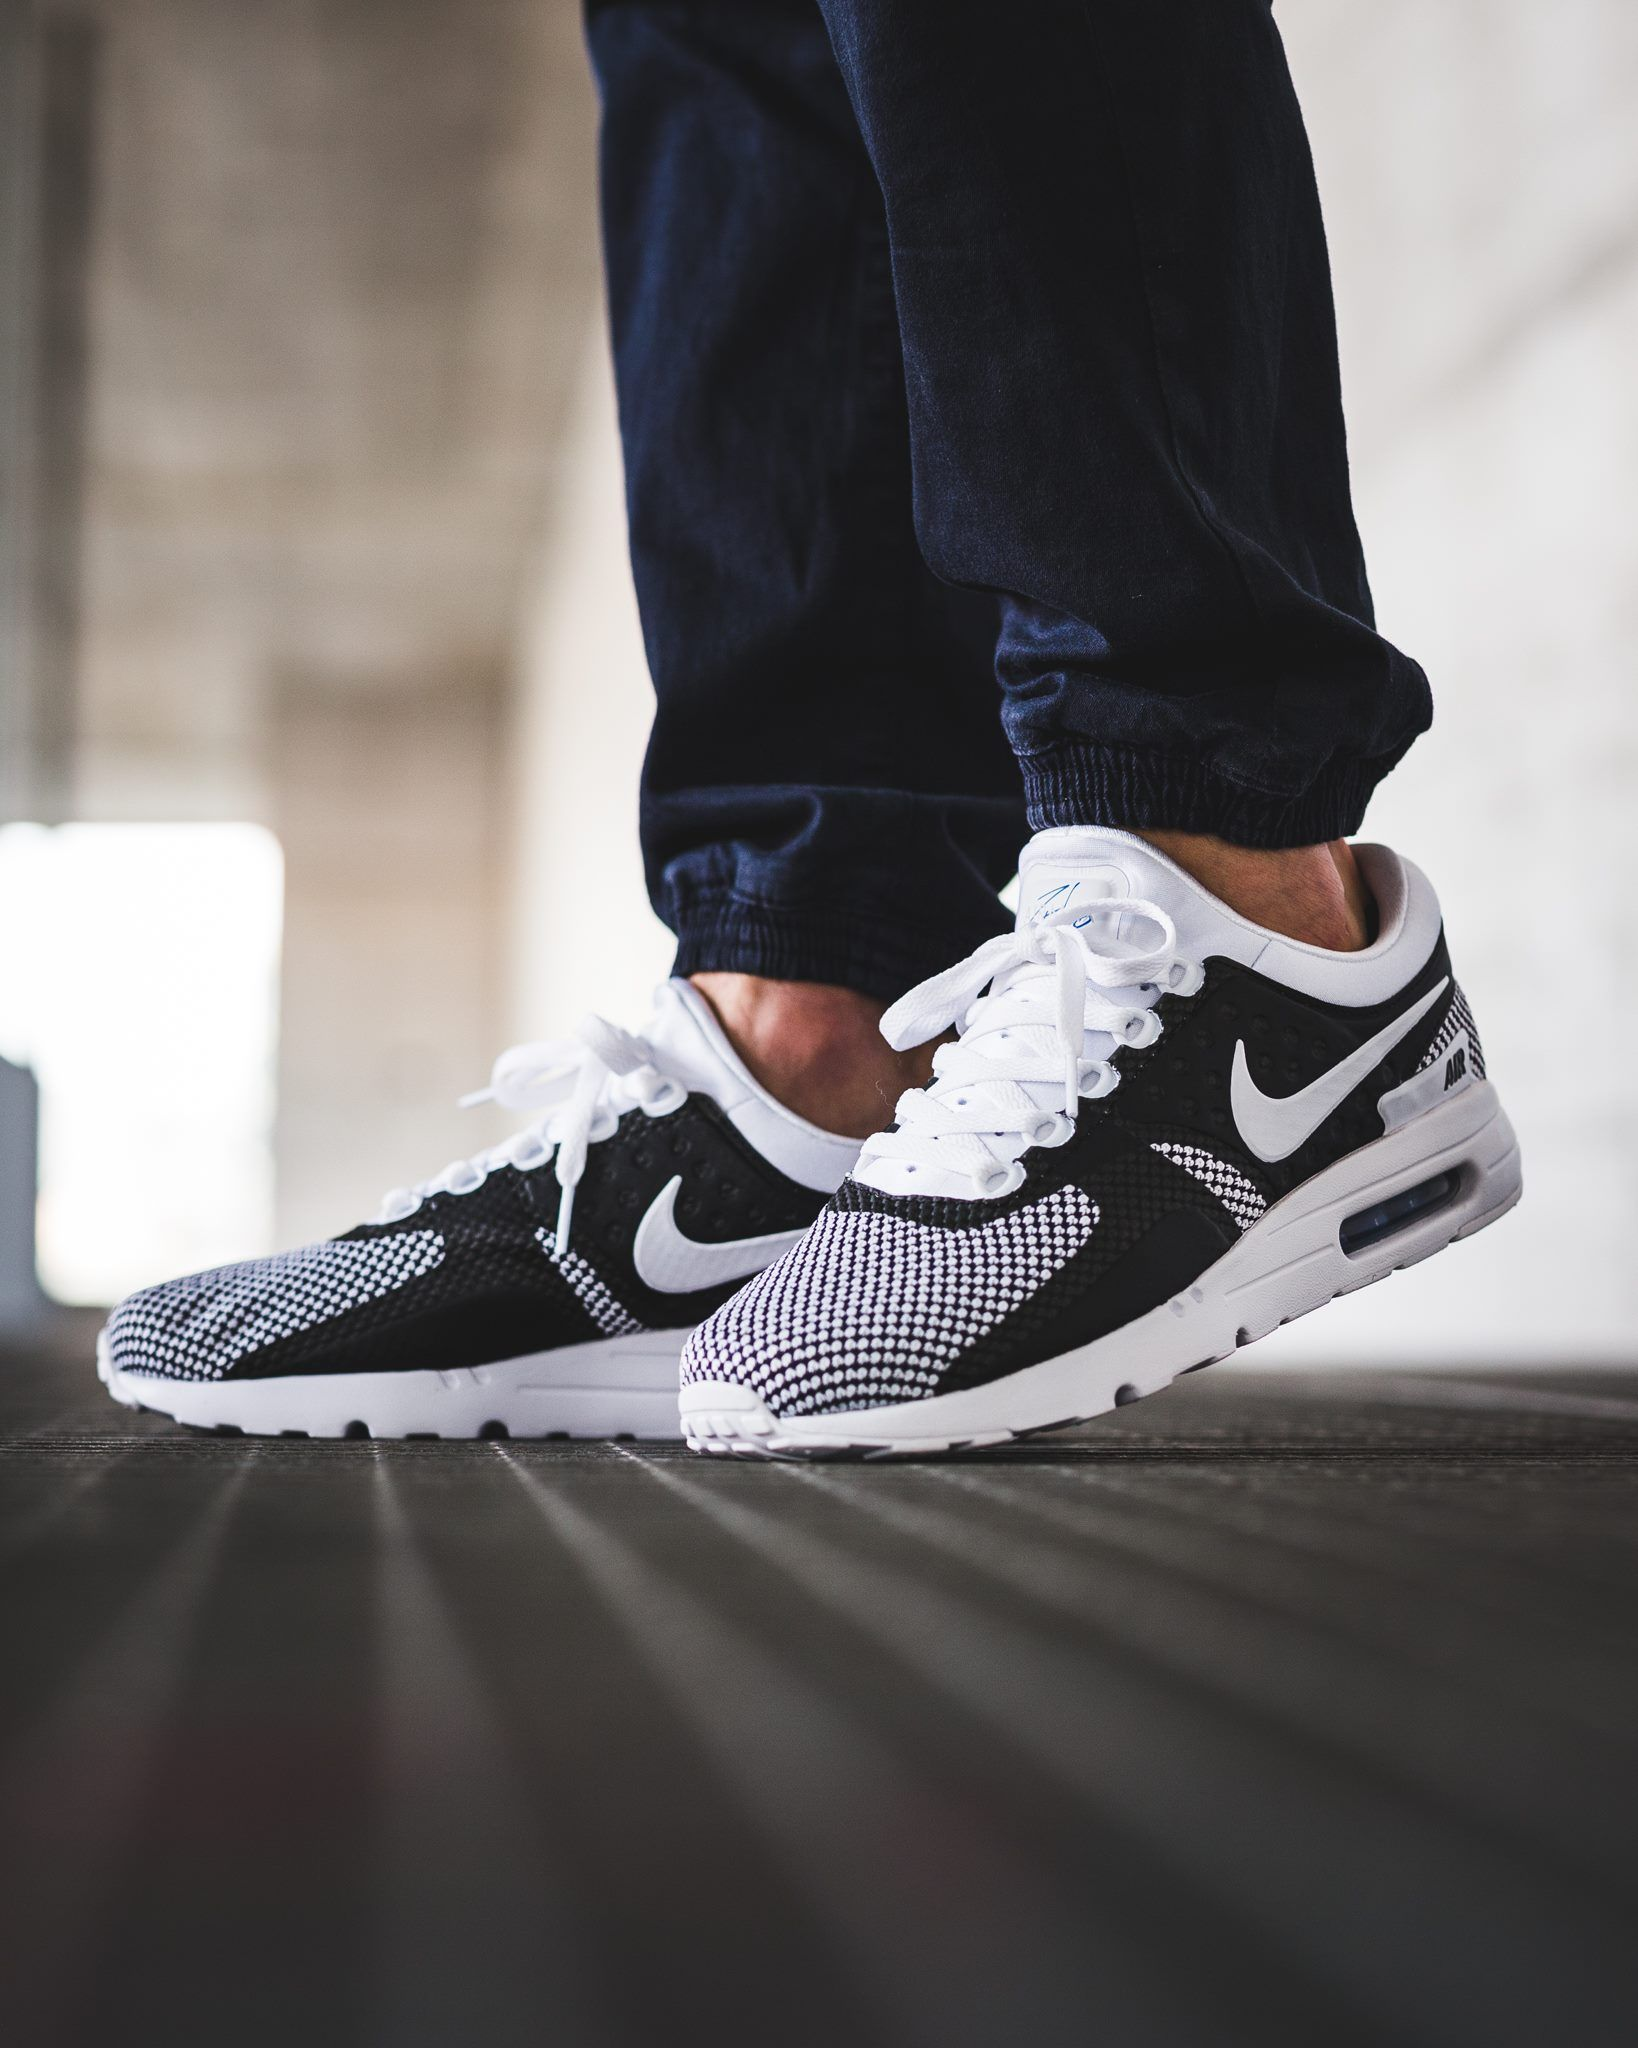 cheap for discount 4b84e e7623 NIKE Air Max Zero Essential 'White/White-Obsidian-Soar' (876070-103) -  KICKS-DAILY.COM